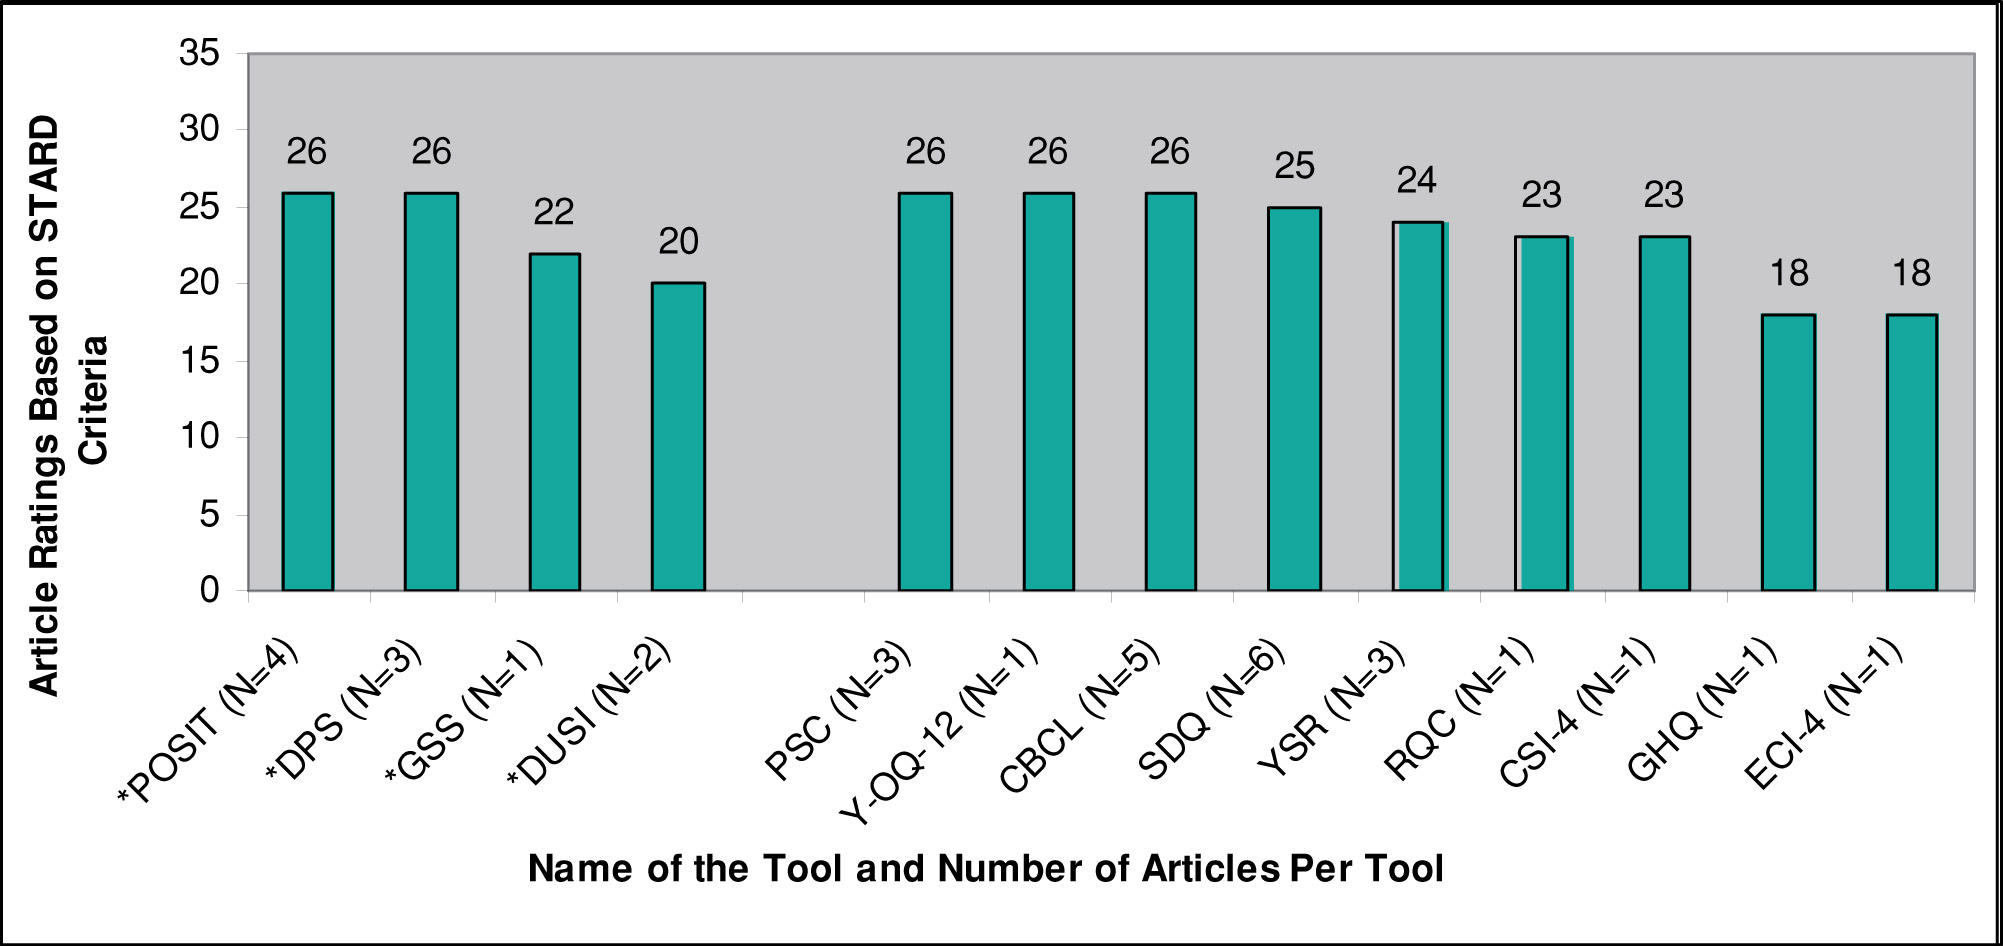 Figure 3: STARD Ratings for Articles on Mental Health-Related Tools